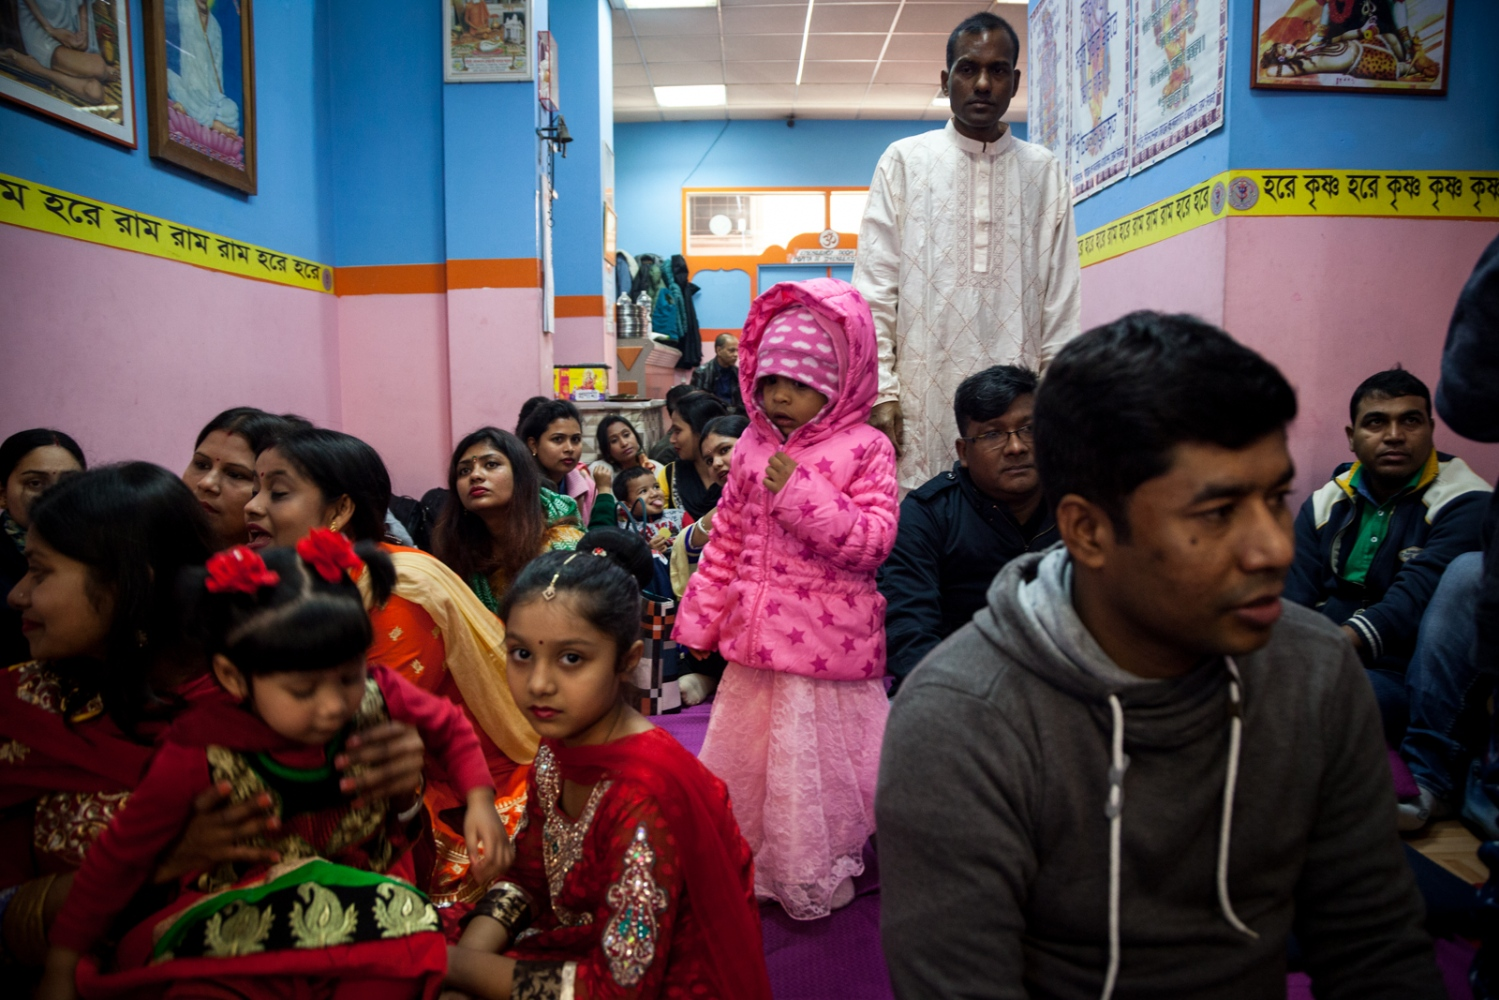 Feb. 1, 2017 - Celebration of Saraswati Puja, the goddess of wisdom, education and knowledge, in a hindu temple in Torpignattara, a working class neighborhood in the southeastern suburbs of Rome. In the last 15 years this area has become home for a big bangladeshi, indian and chinese community.